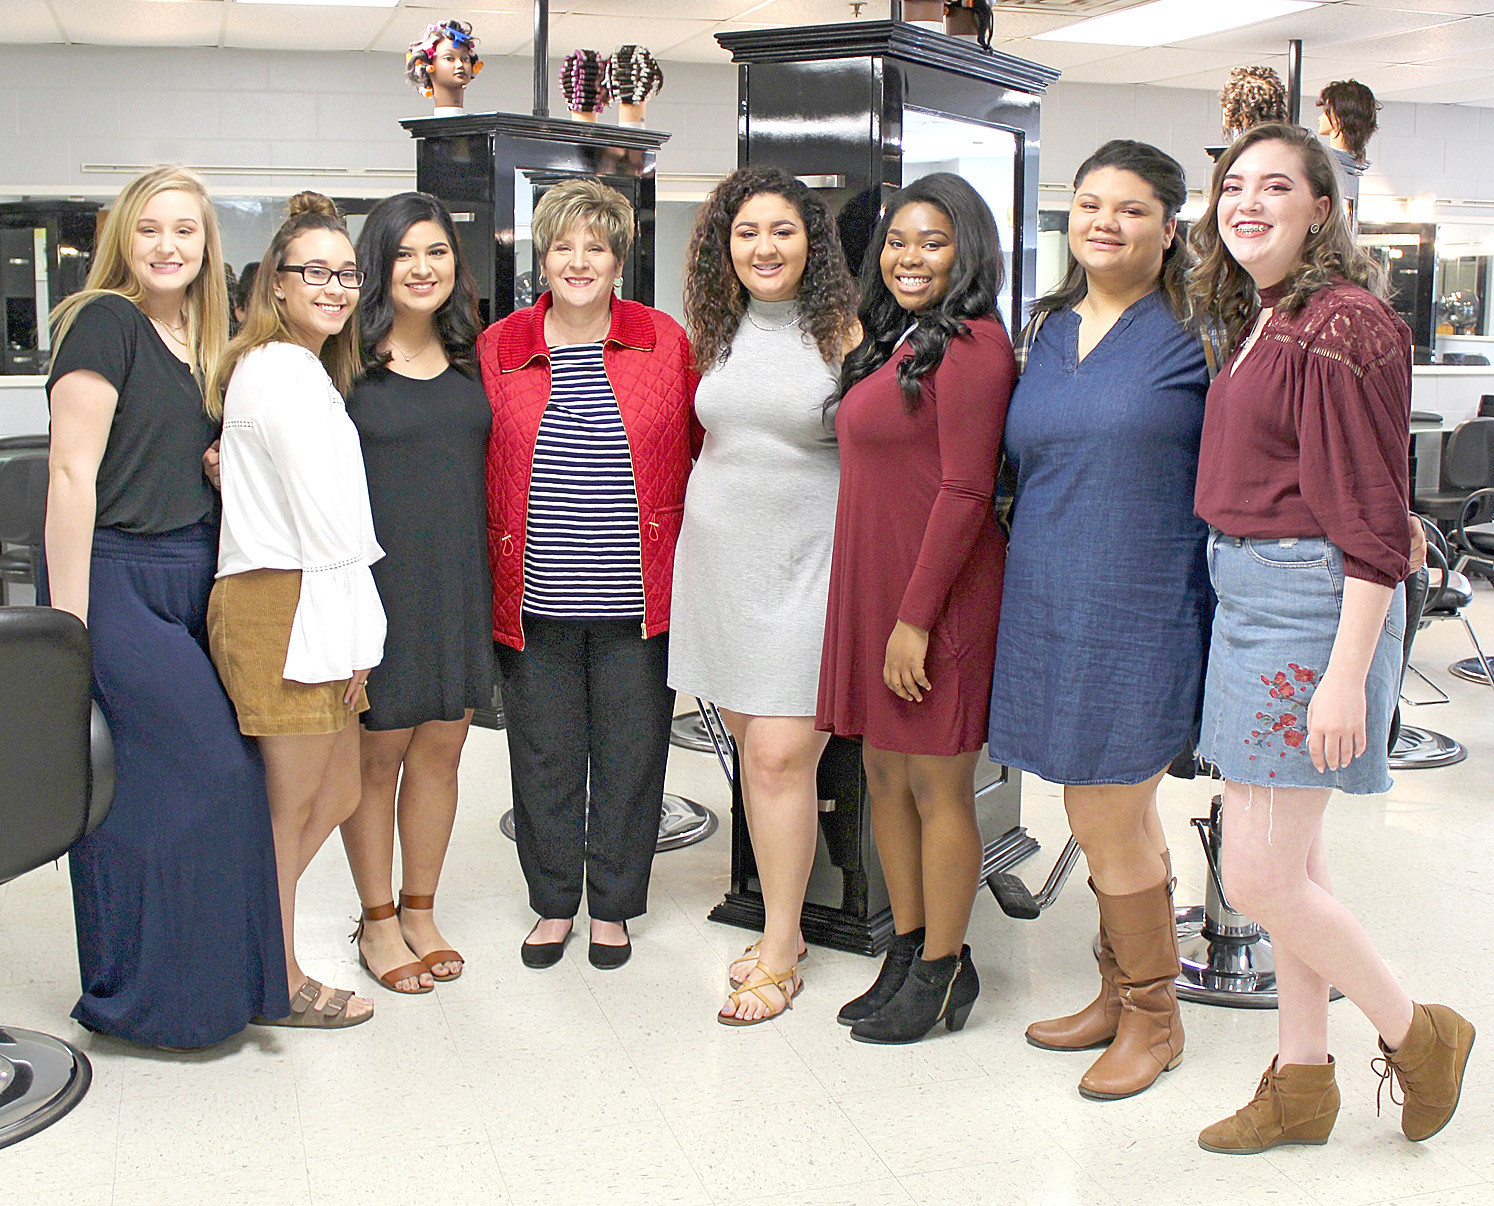 CLEVELAND HIGH SCHOOL cosmetology students are seen here in their classroom which has received $30,000 worth of new equipment. The classroom's makeover includes new pedicure stations, hair-washing stations, dryer chairs, manicure tables and hairstyling stations, among other improvements.